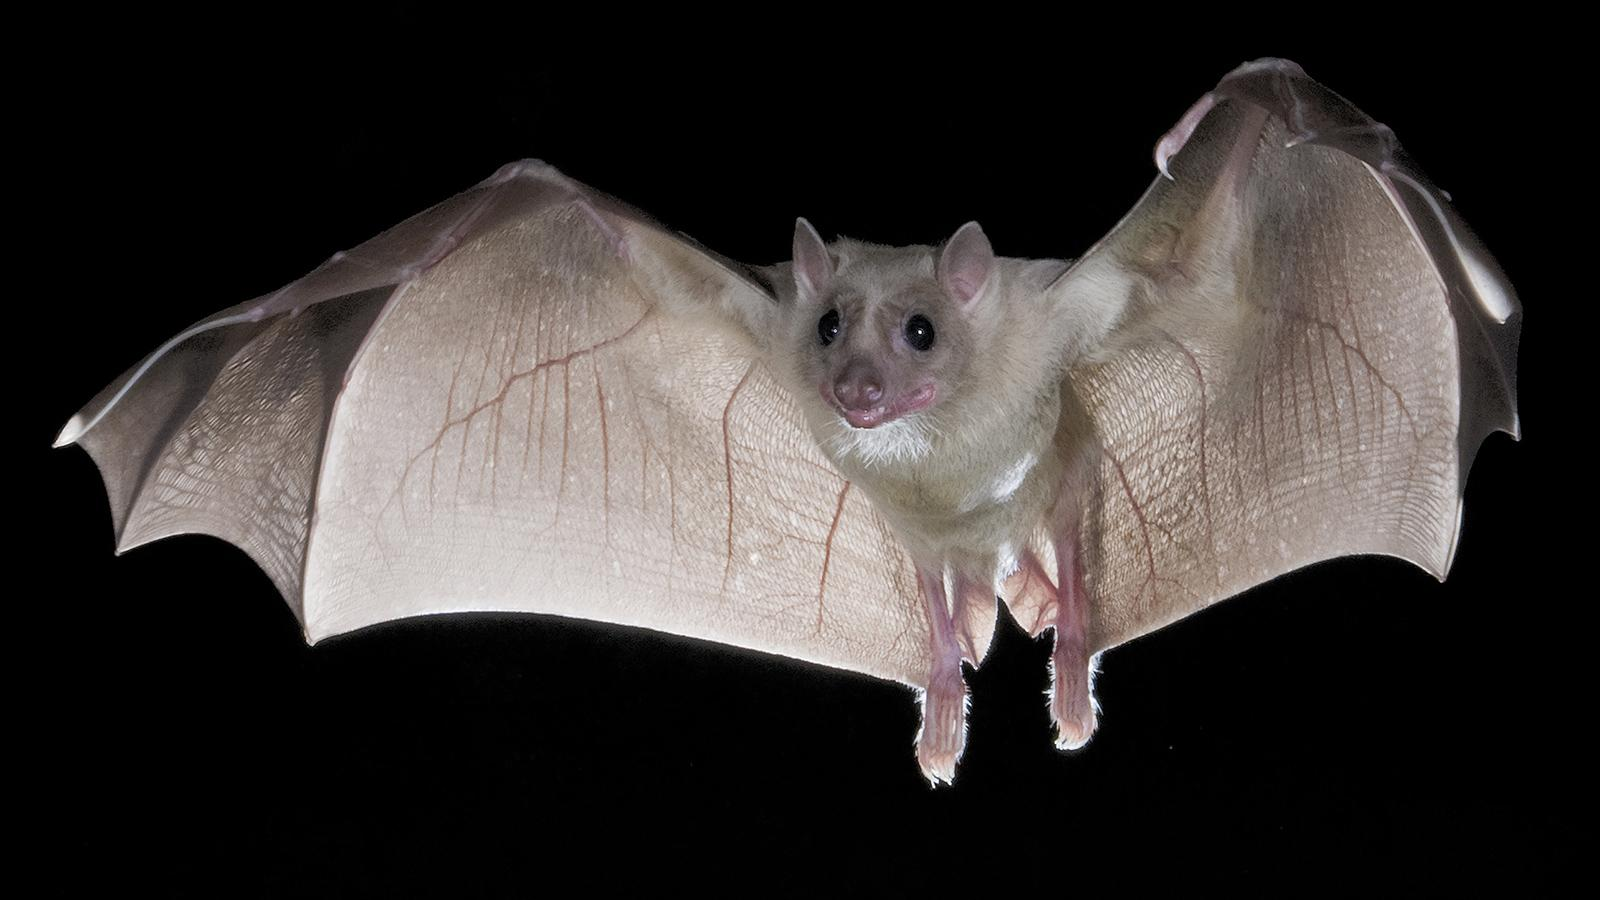 The world's largest bat also known as the flying fox is found in the islands of Singapore.